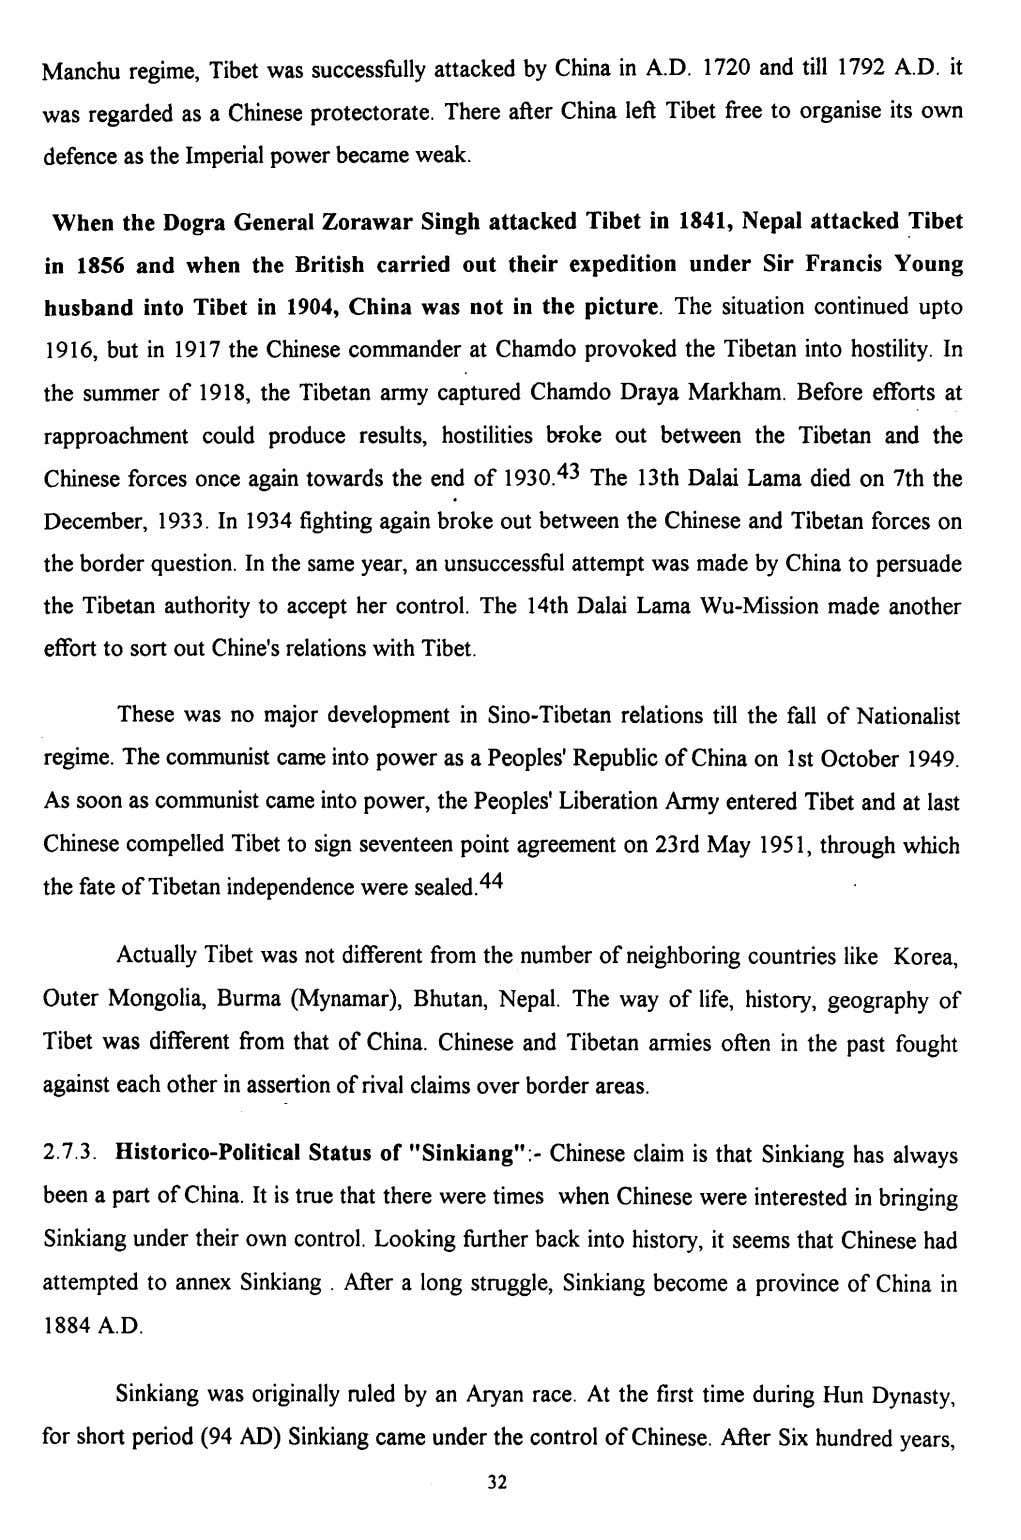 Manchu regime, Tibet was successfully attacked by China in A.D. 1720 and till 1792 A.D.